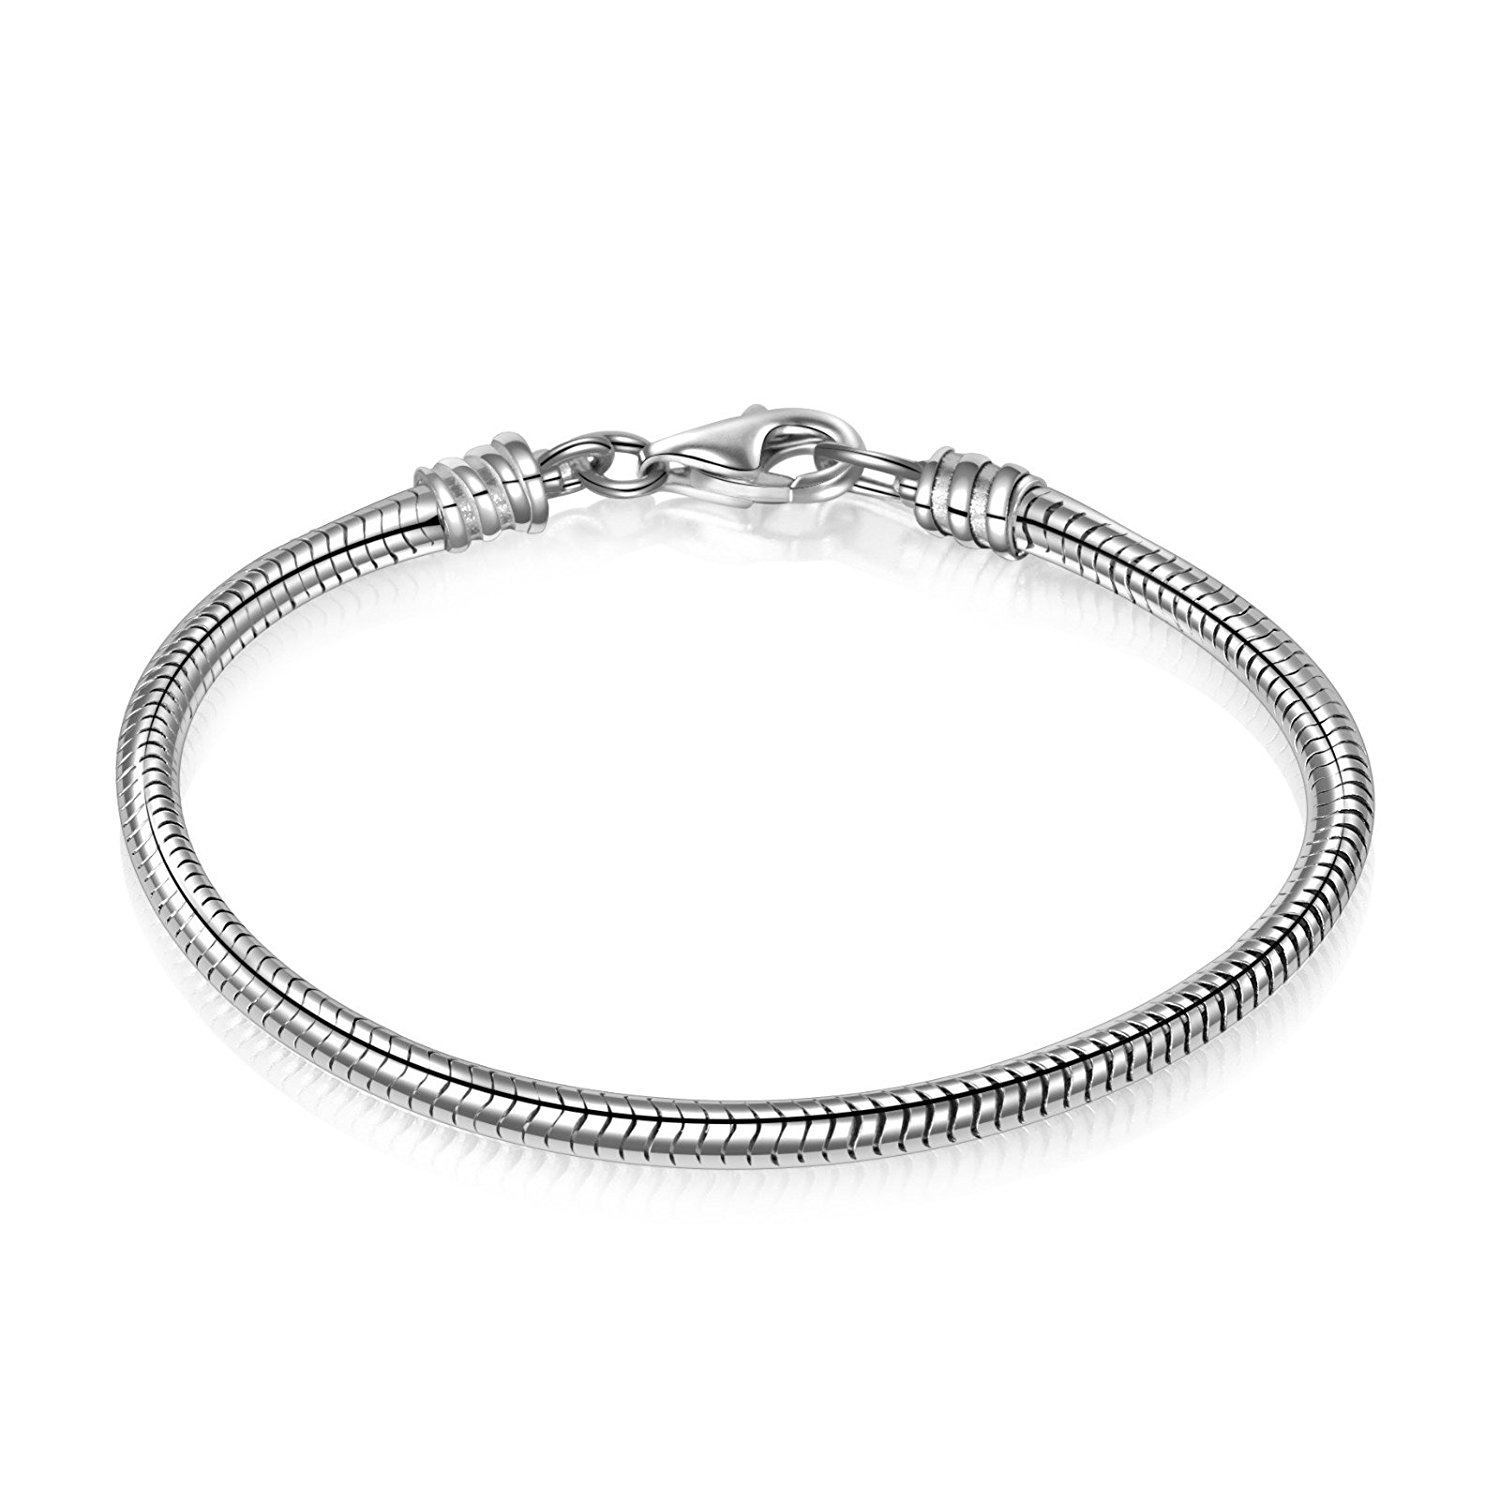 Sterling Silver Baby Heart Charm Bracelet Latest Technology Precious Metal Without Stones